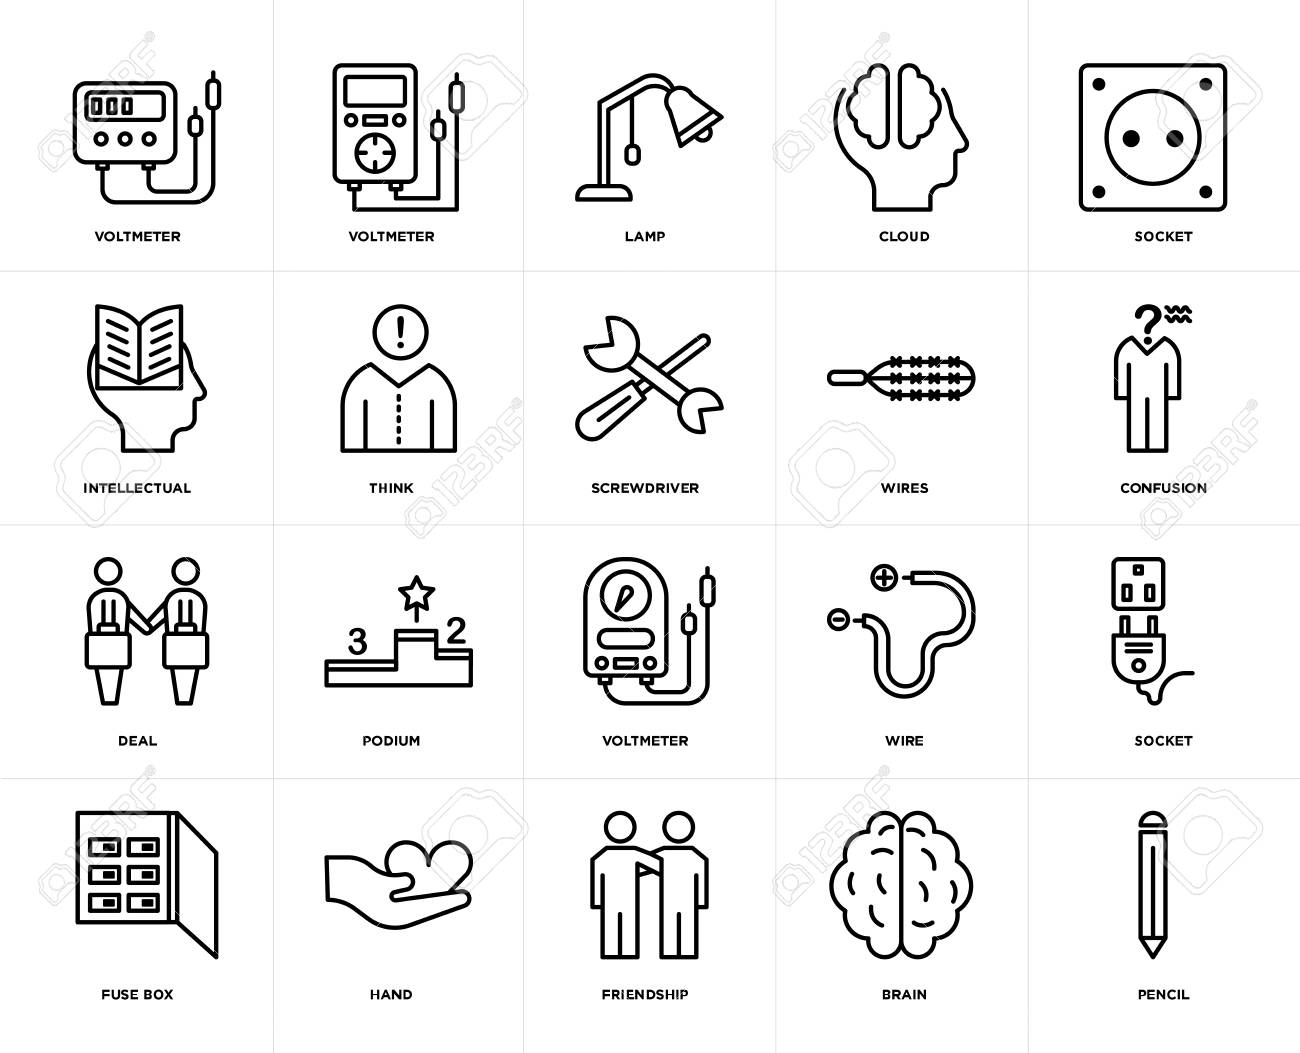 hight resolution of set of 20 icons such as pencil brain friendship hand fuse box